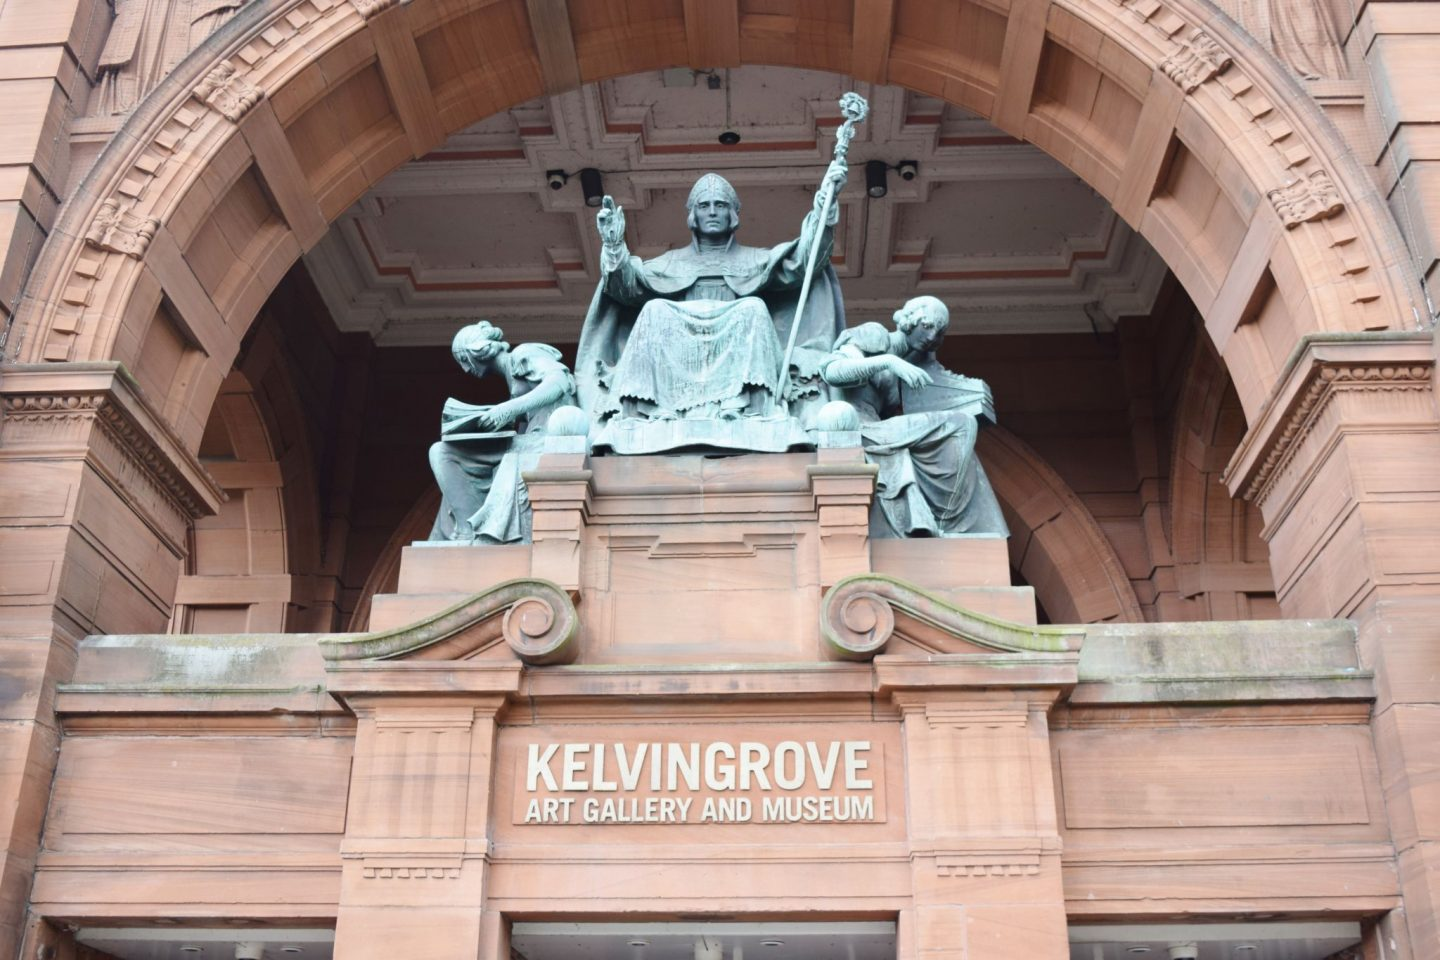 kelvingrove art gallery & museum entrance